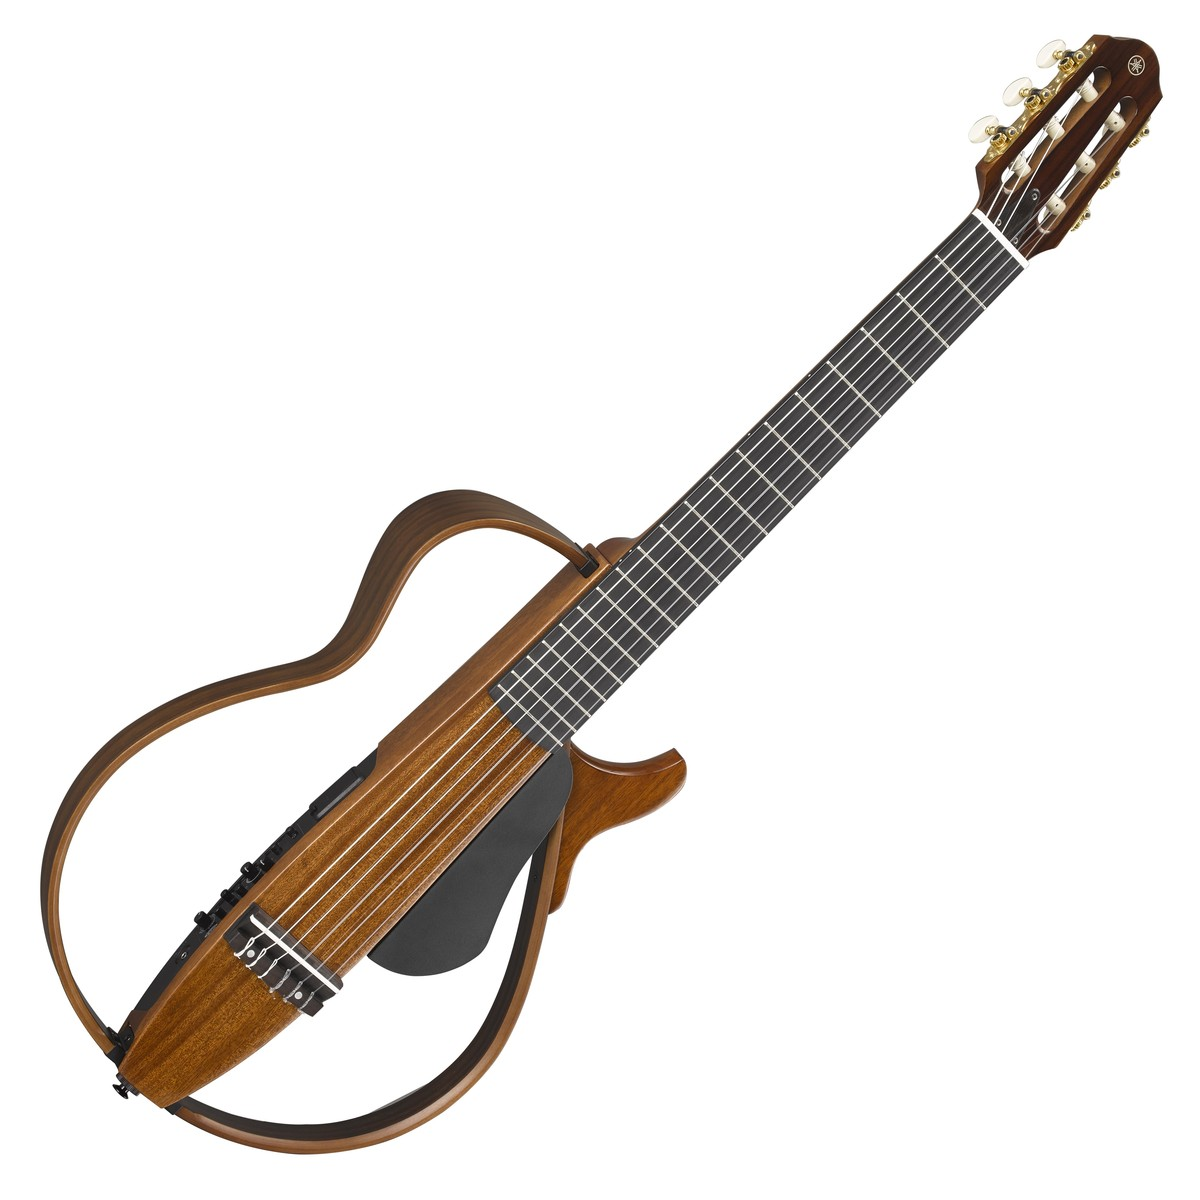 Yamaha slg200nw chitarra classica silent naturale for Ganci per appendere chitarre